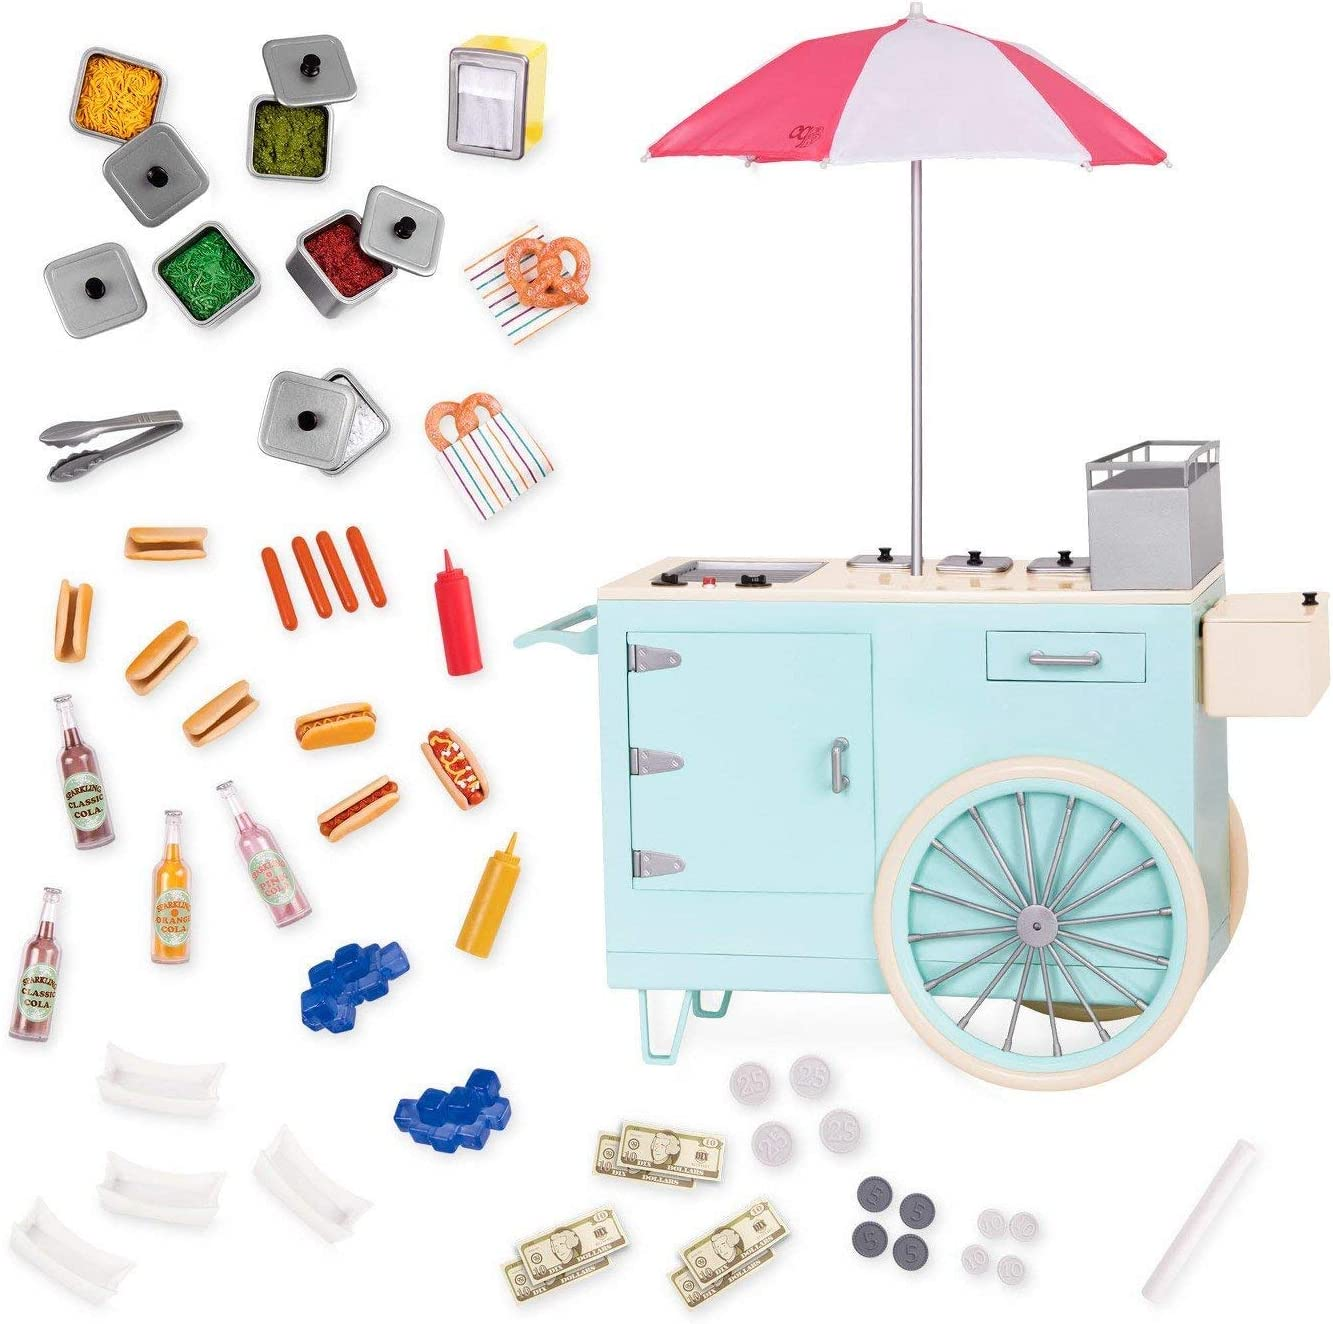 "Our Generation by Battat- Retro Hot Dog Cart- Toy, Cart & Accessory Set for 18"" Dolls- for Age 3 Years & Up"